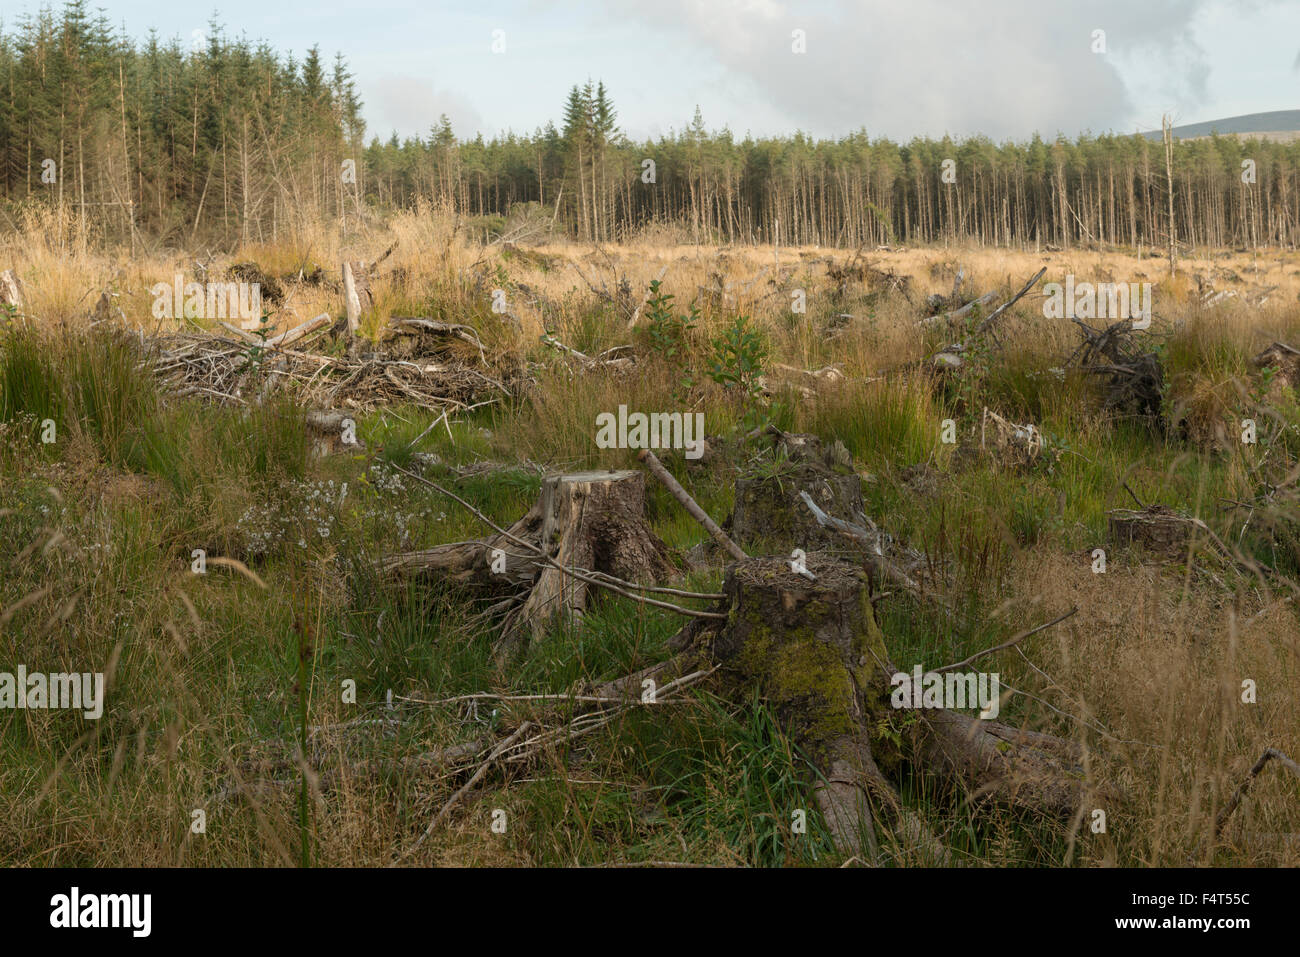 Spruce plantation partially harvested,Sheriffmuir,Perthshire,Scotland,UK, - Stock Image